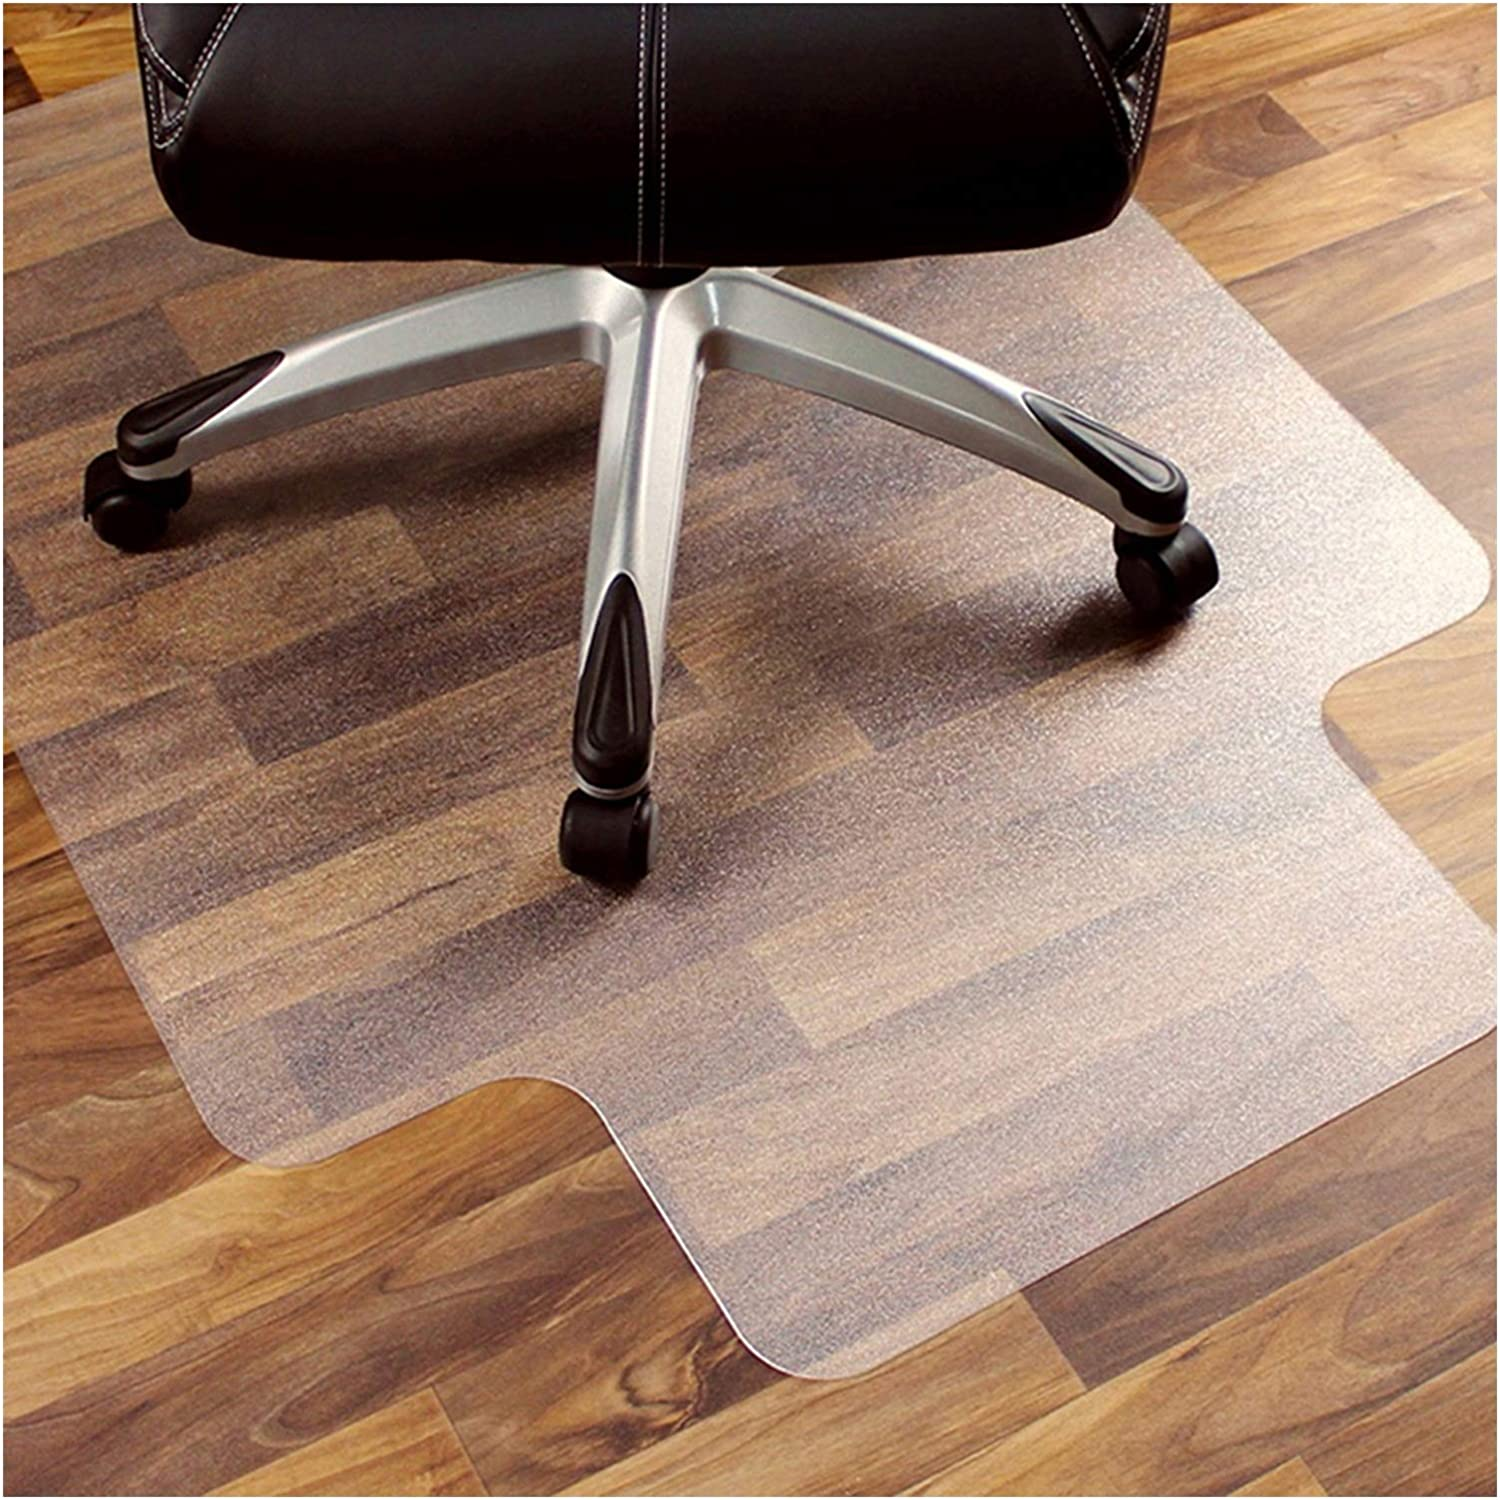 JIAJUAN PVC Office Chair Mat Non-Slip Shipping included Matte Convex Mats Super Special SALE held